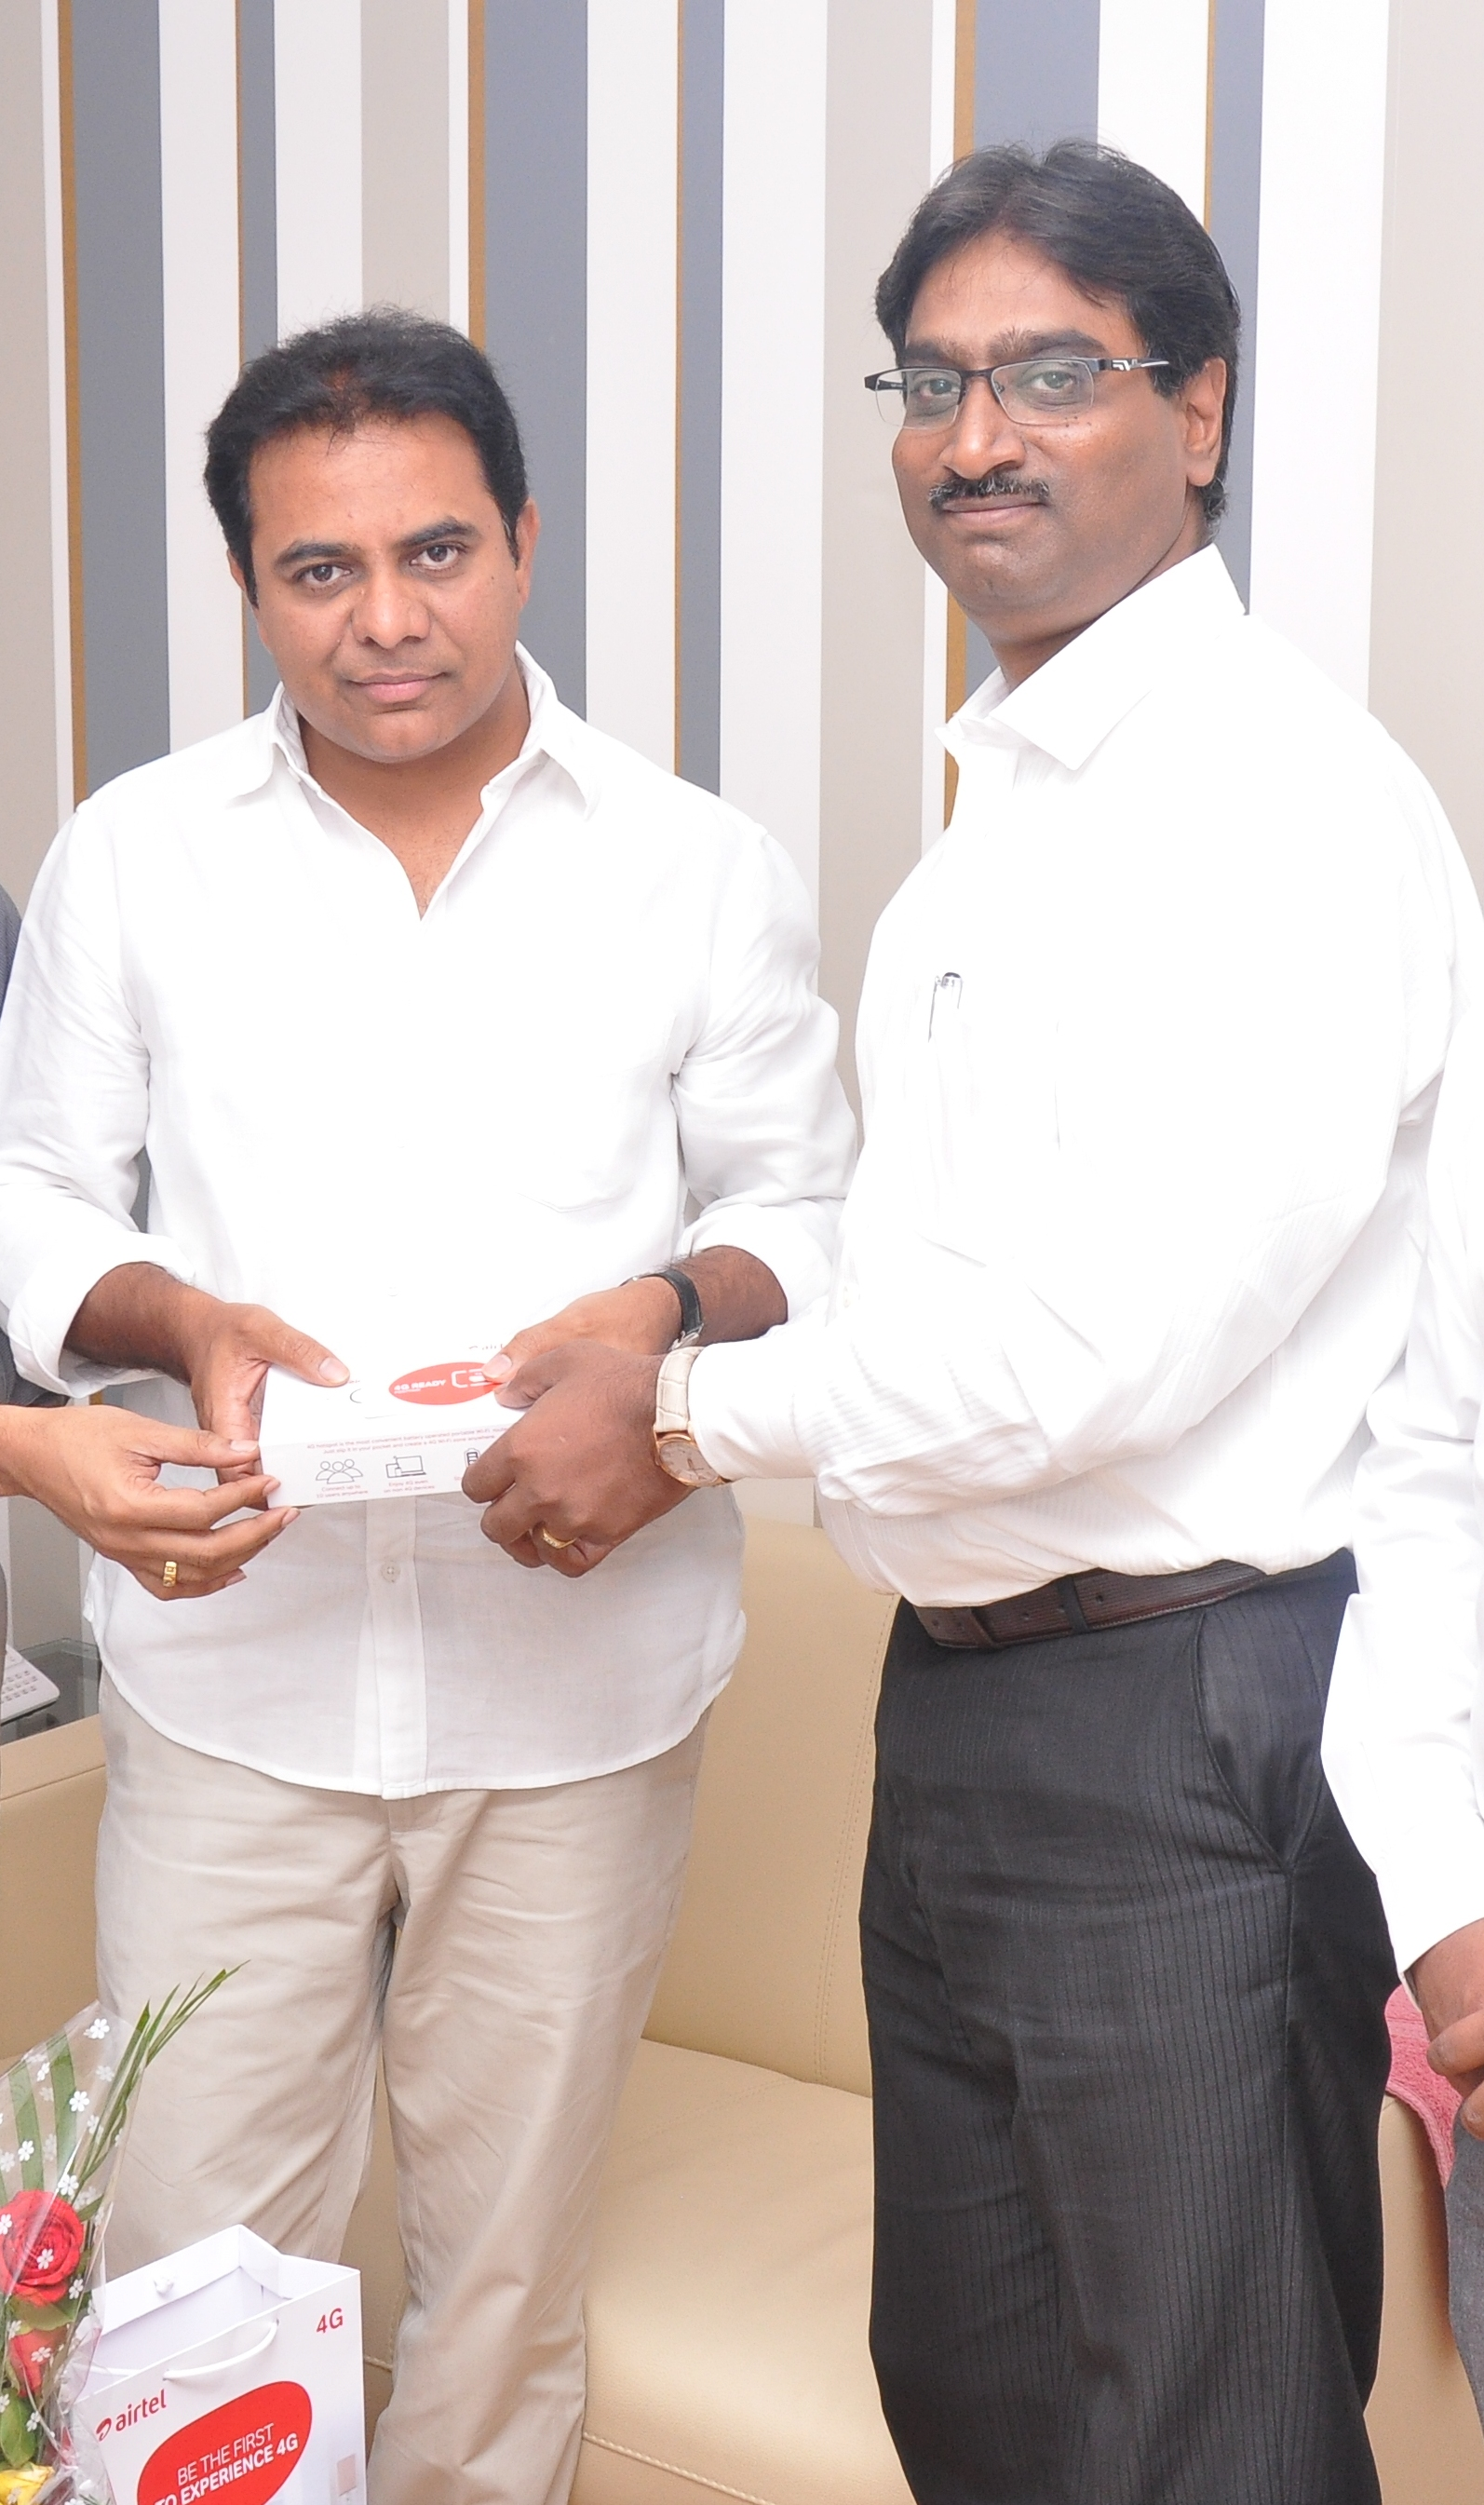 Airtel CEO Meeting with minister KT RAMA RAO on the occasion of the launch of Airtel 4G in Hyderabad